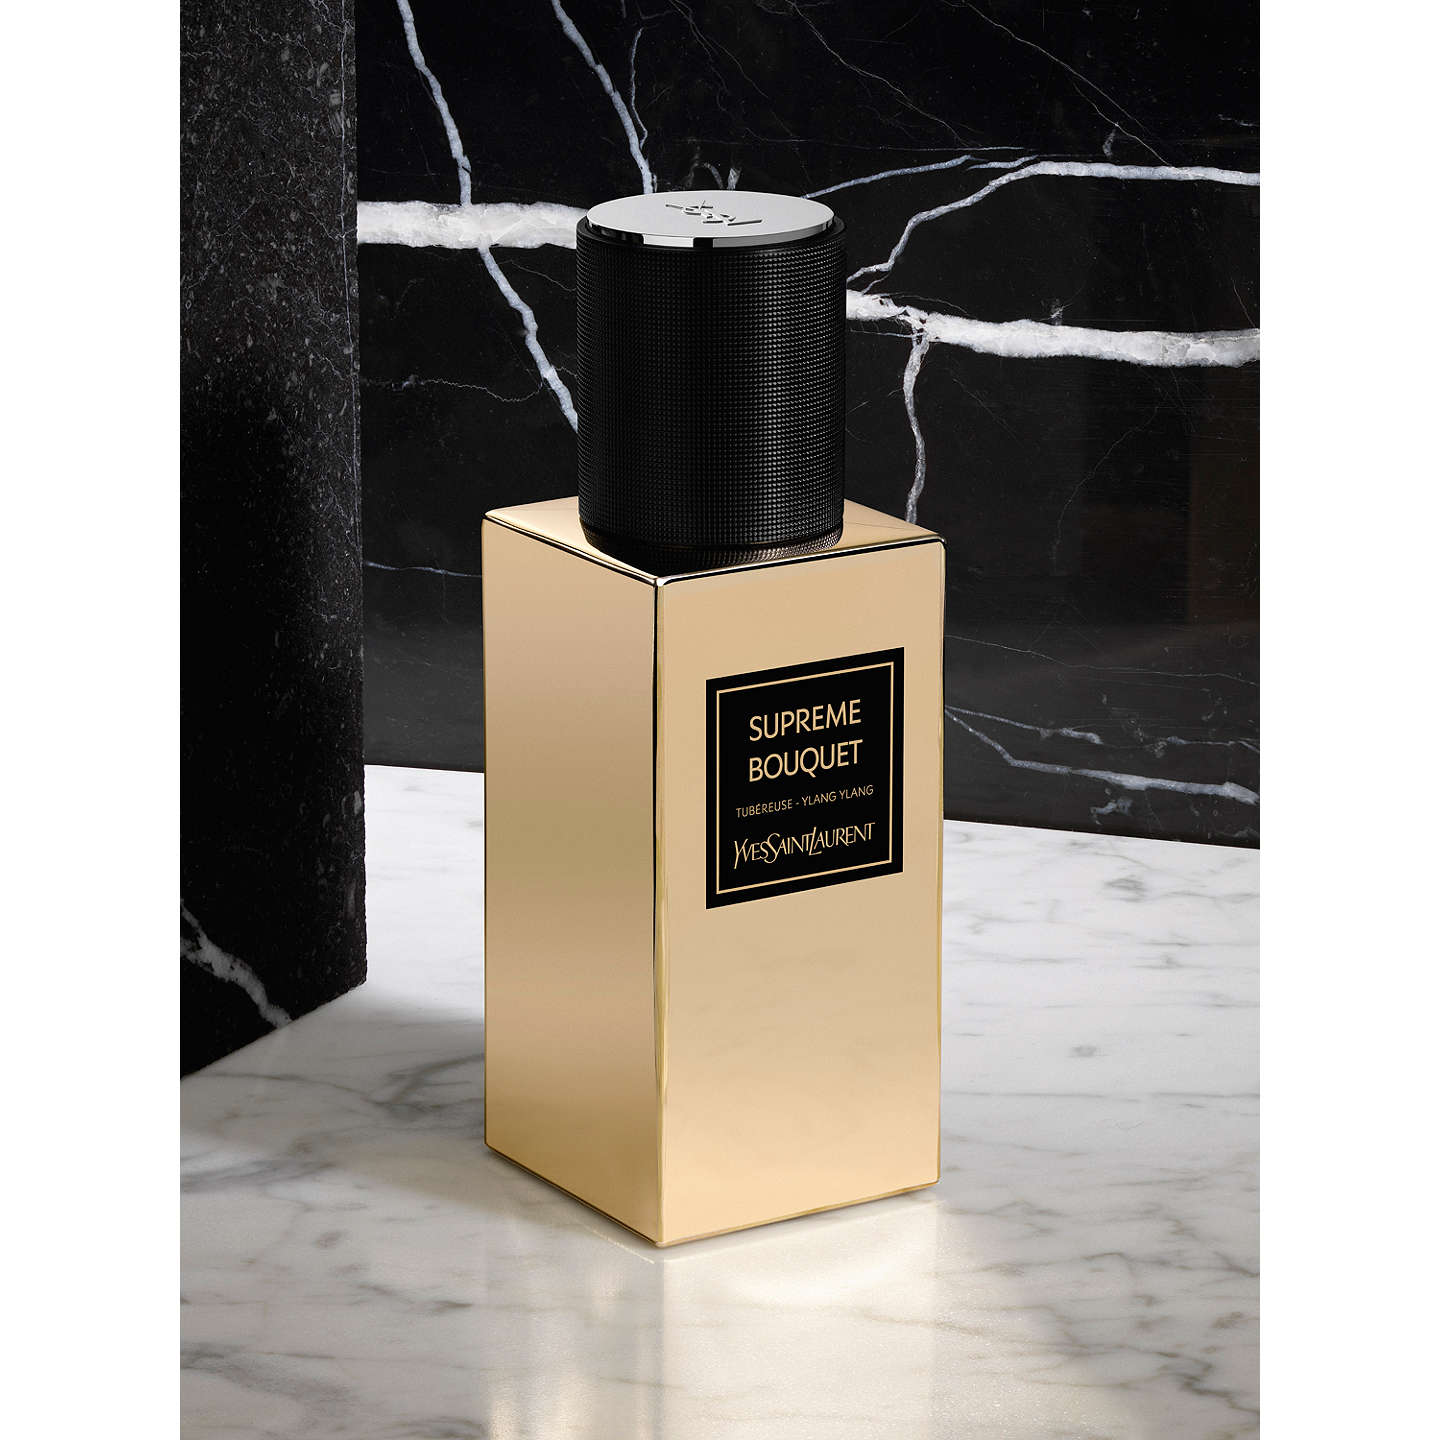 BuyYves Saint Laurent Collection Orientale Supreme Bouquet Eau de Parfum Online at johnlewis.com